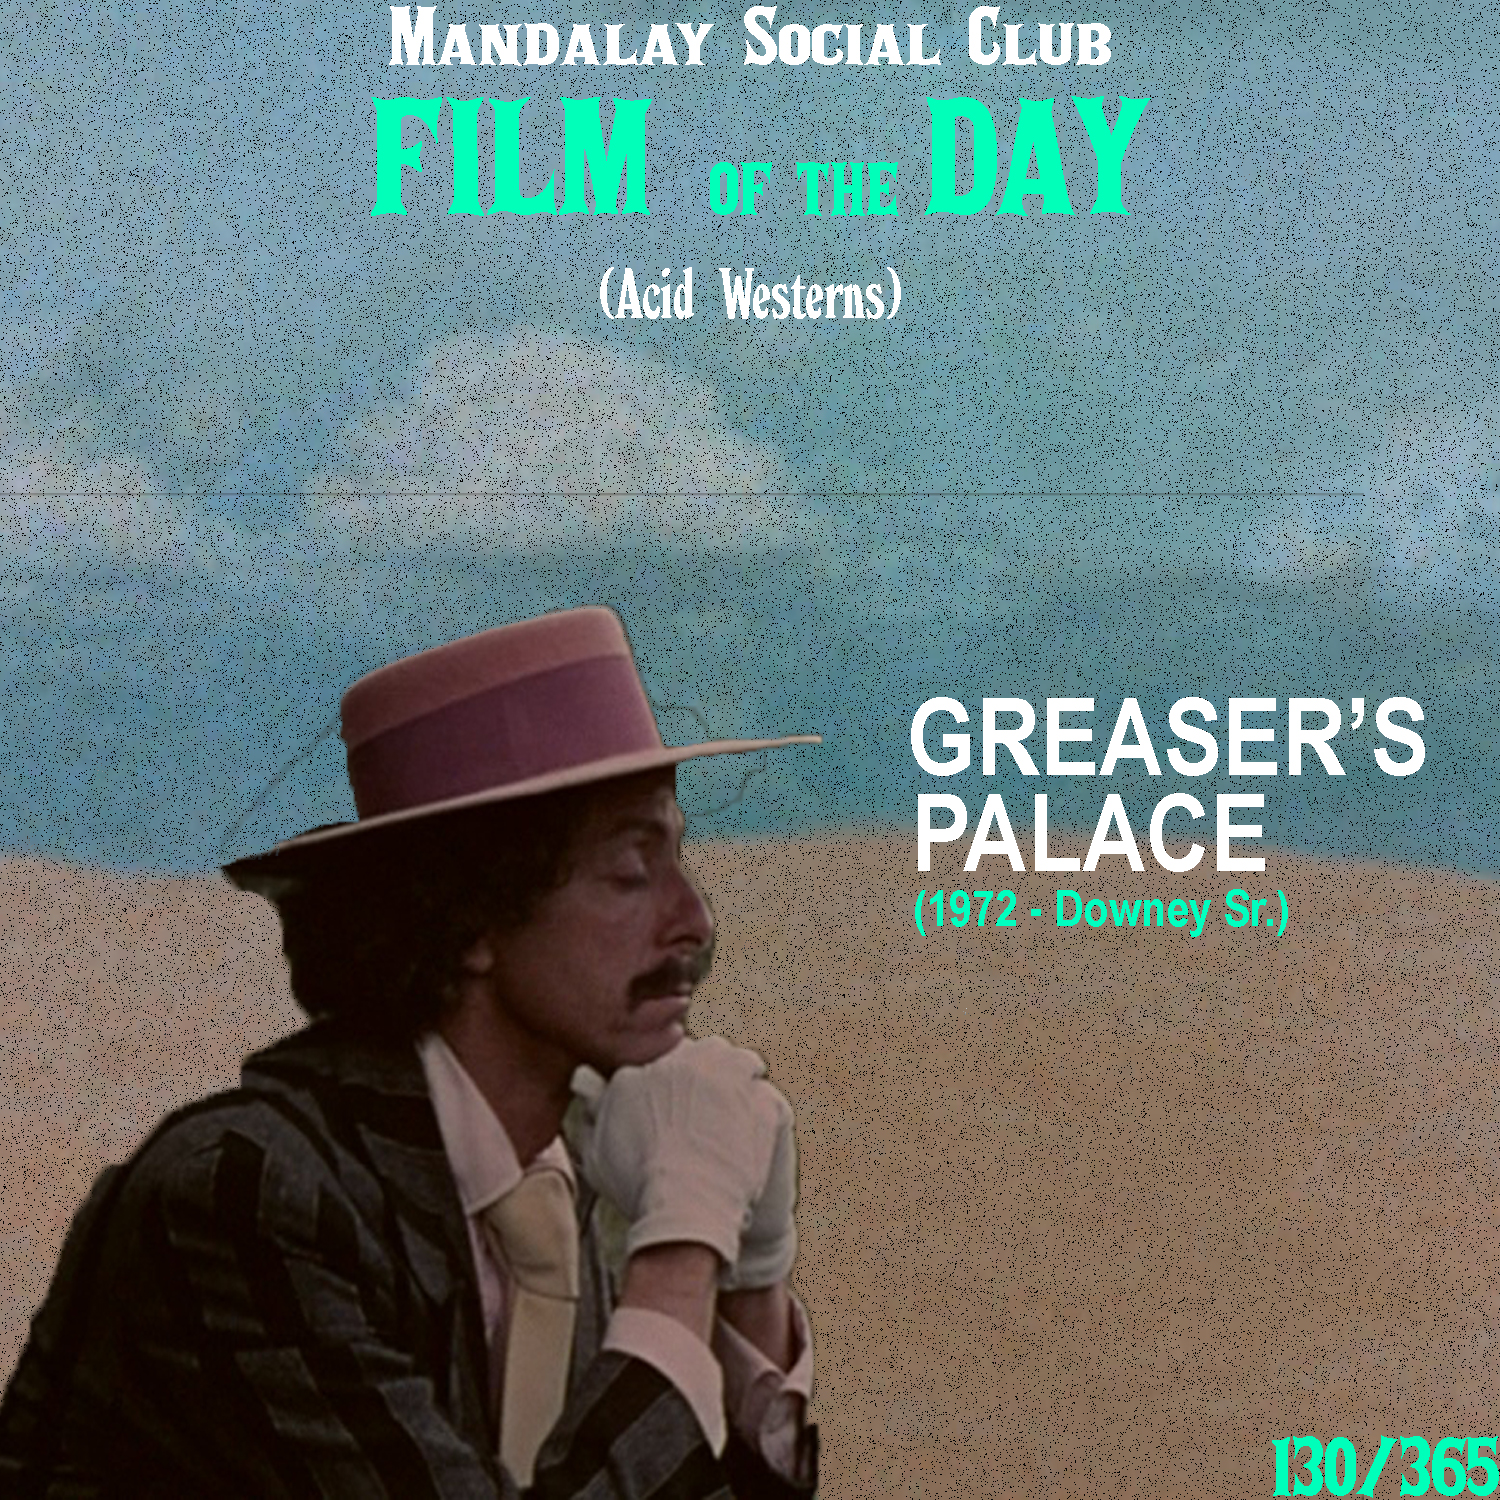 GREASER'S PALACE     (dir. Robert Downey Sr.)   Written and Directed by Robert Downey Sr.,  Greaser's Palace  takes the groundwork laid in  El Topo  to create a uniquely original and hilarious take on the Western.   Greaser's Place  follows a man named Jesse who doubles as a more modern figure of Jesus Christ, only this one's roaming through the West. In fact, he tells everyone hemmers that he's on his way to Jerusalem to become an 'actor/singer.'  The film's structure is pretty loose and doesn't spend too much in the way of creating a solid narrative, but it succeeds effortlessly in satirizing the concept of organized religion and presenting it in such a creative manner. This film also has a cool little role courtesy of the director's not-yet famous son Robert Downey Jr!    3.5/5     WATCH: Putlocker (FREE)